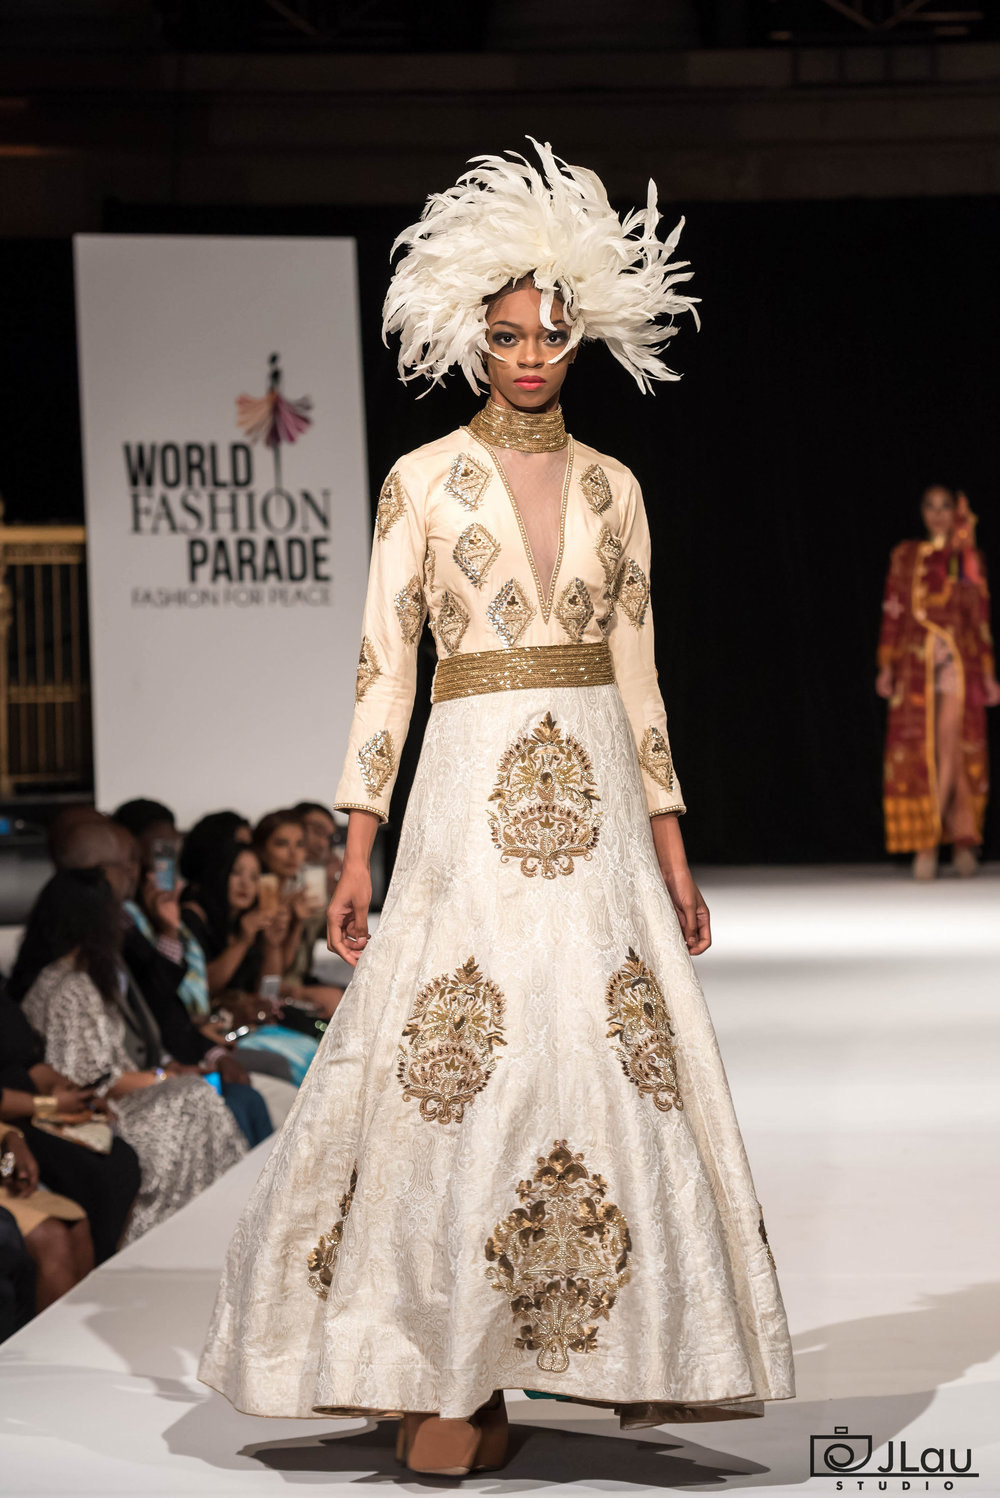 World Fashion parade Designer: Re'Malhi